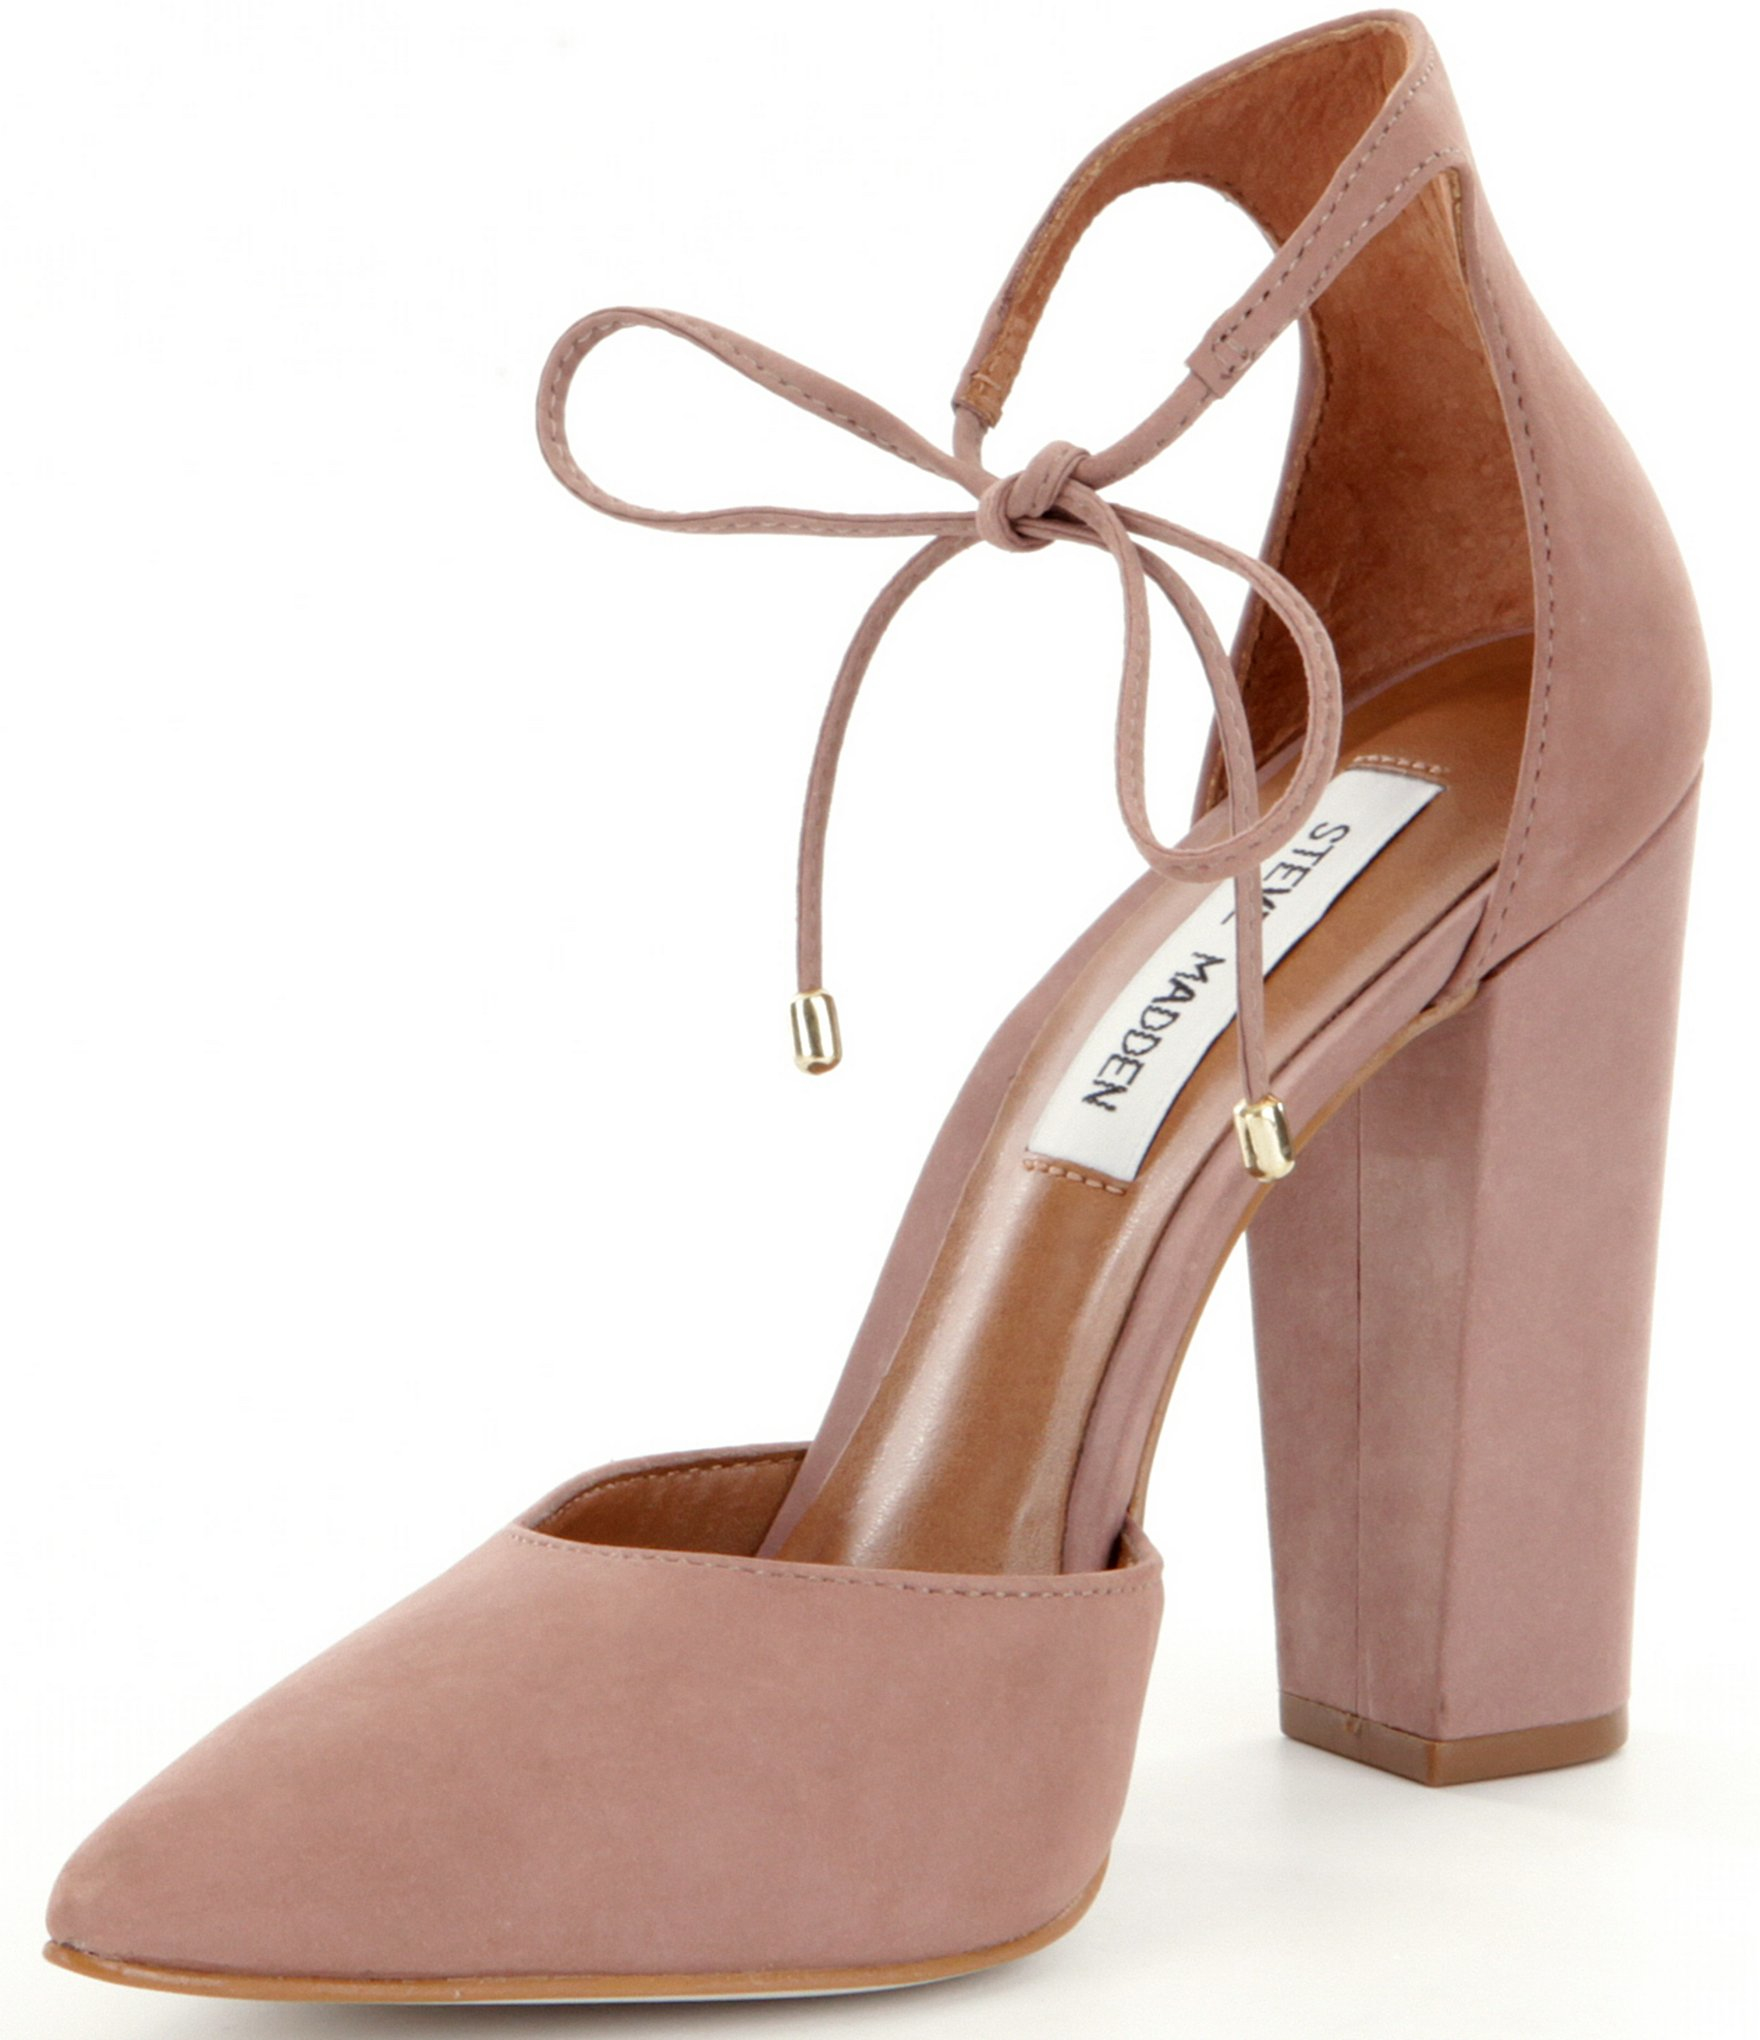 966b2214fed Lyst - Steve Madden Pampered Pointed-toe Tie Closure Pumps in Pink